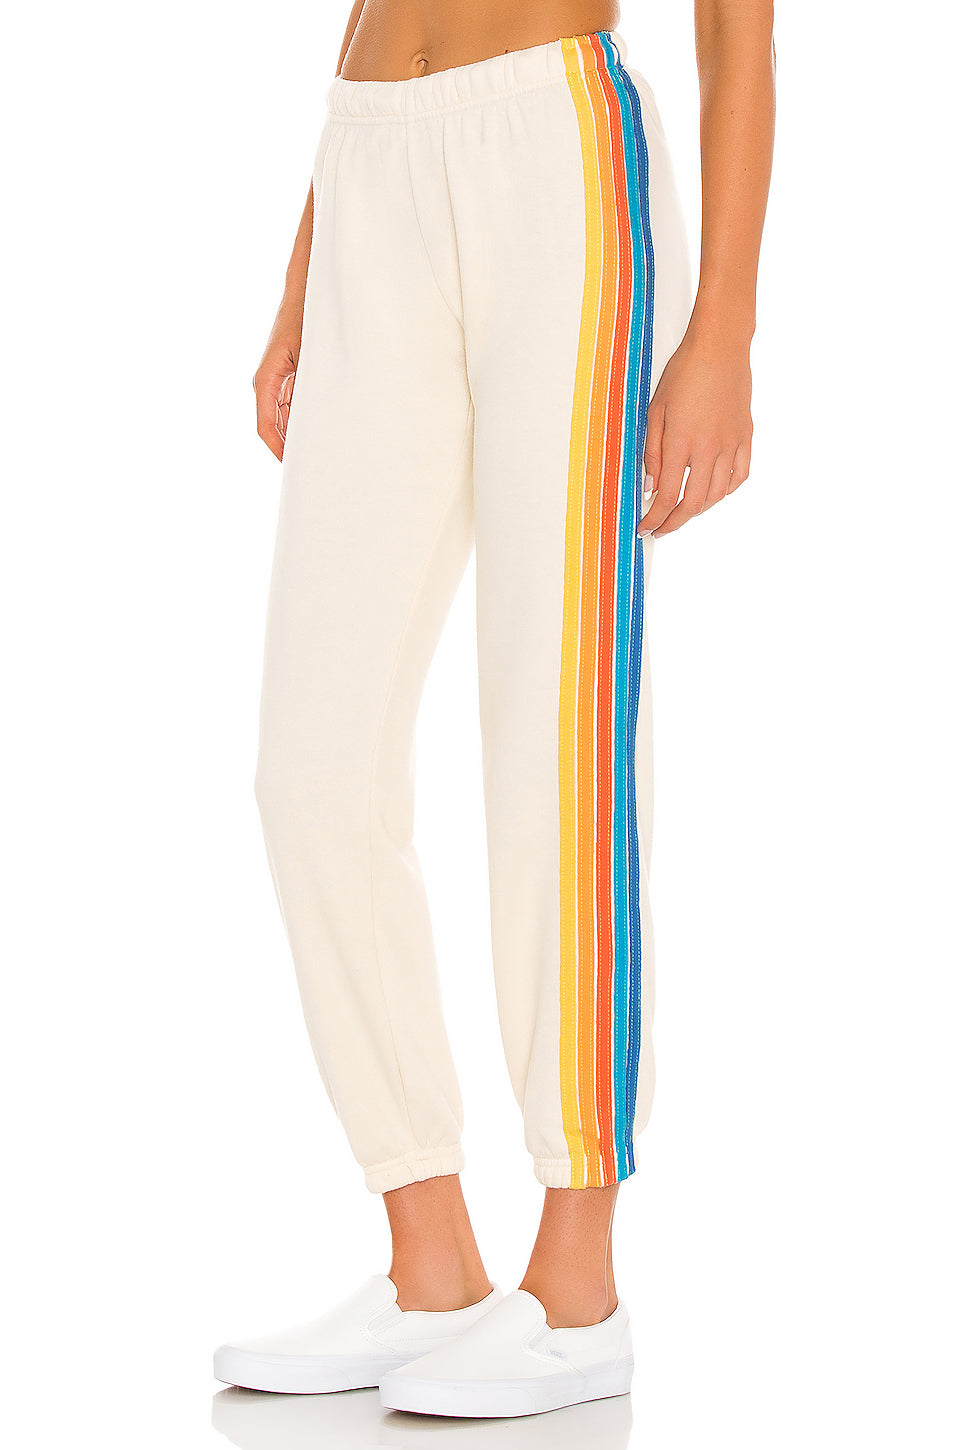 Aviator Nation Sweatpants - Vintage White/ Orange Stripes